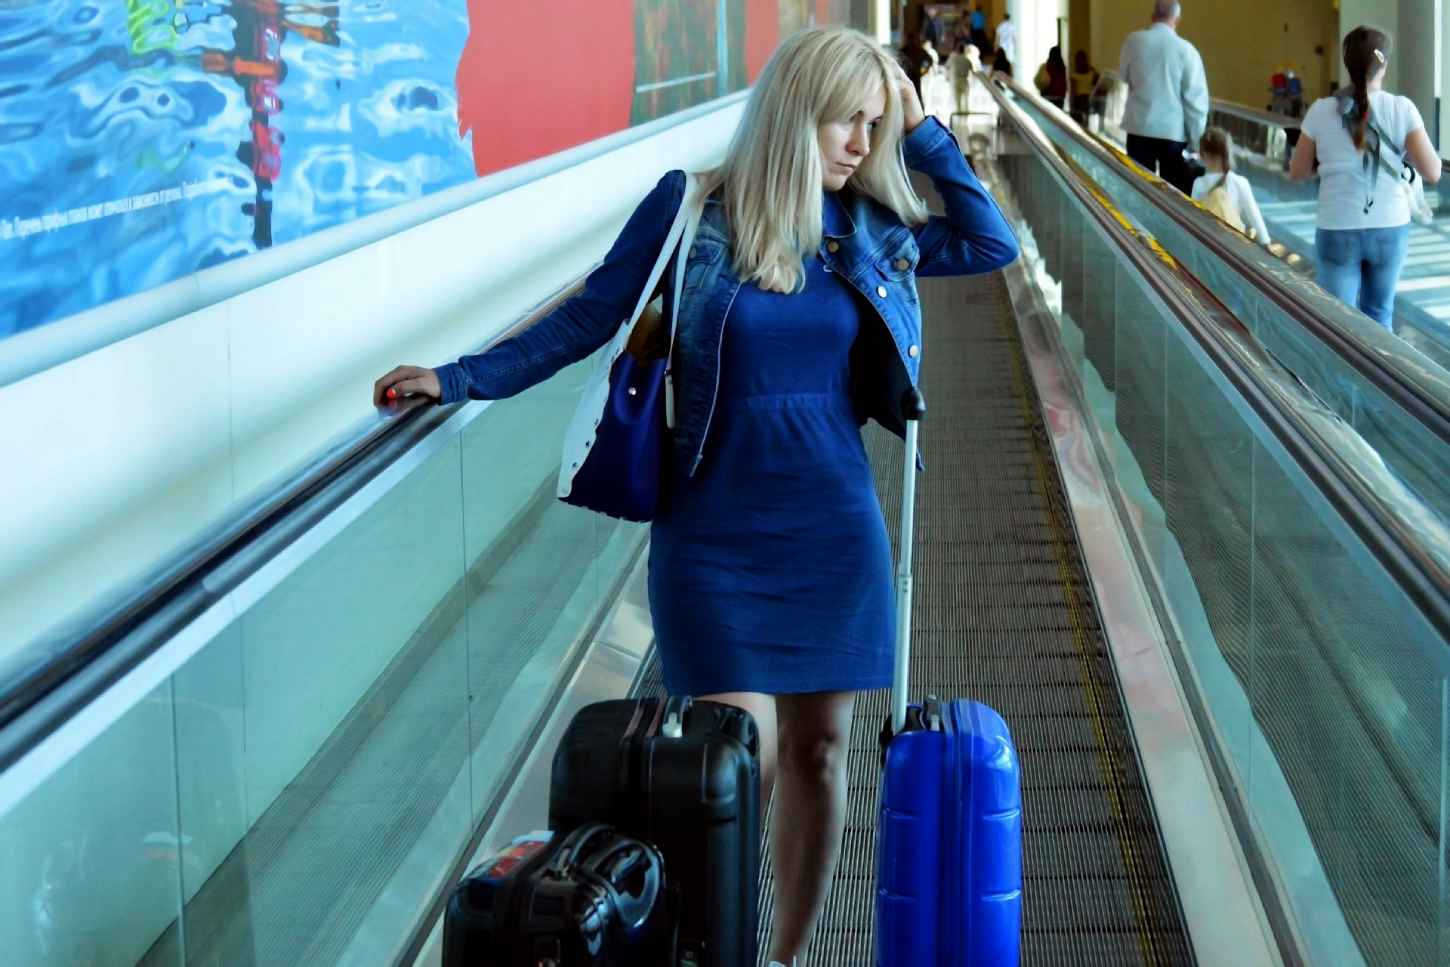 woman traveling with bags